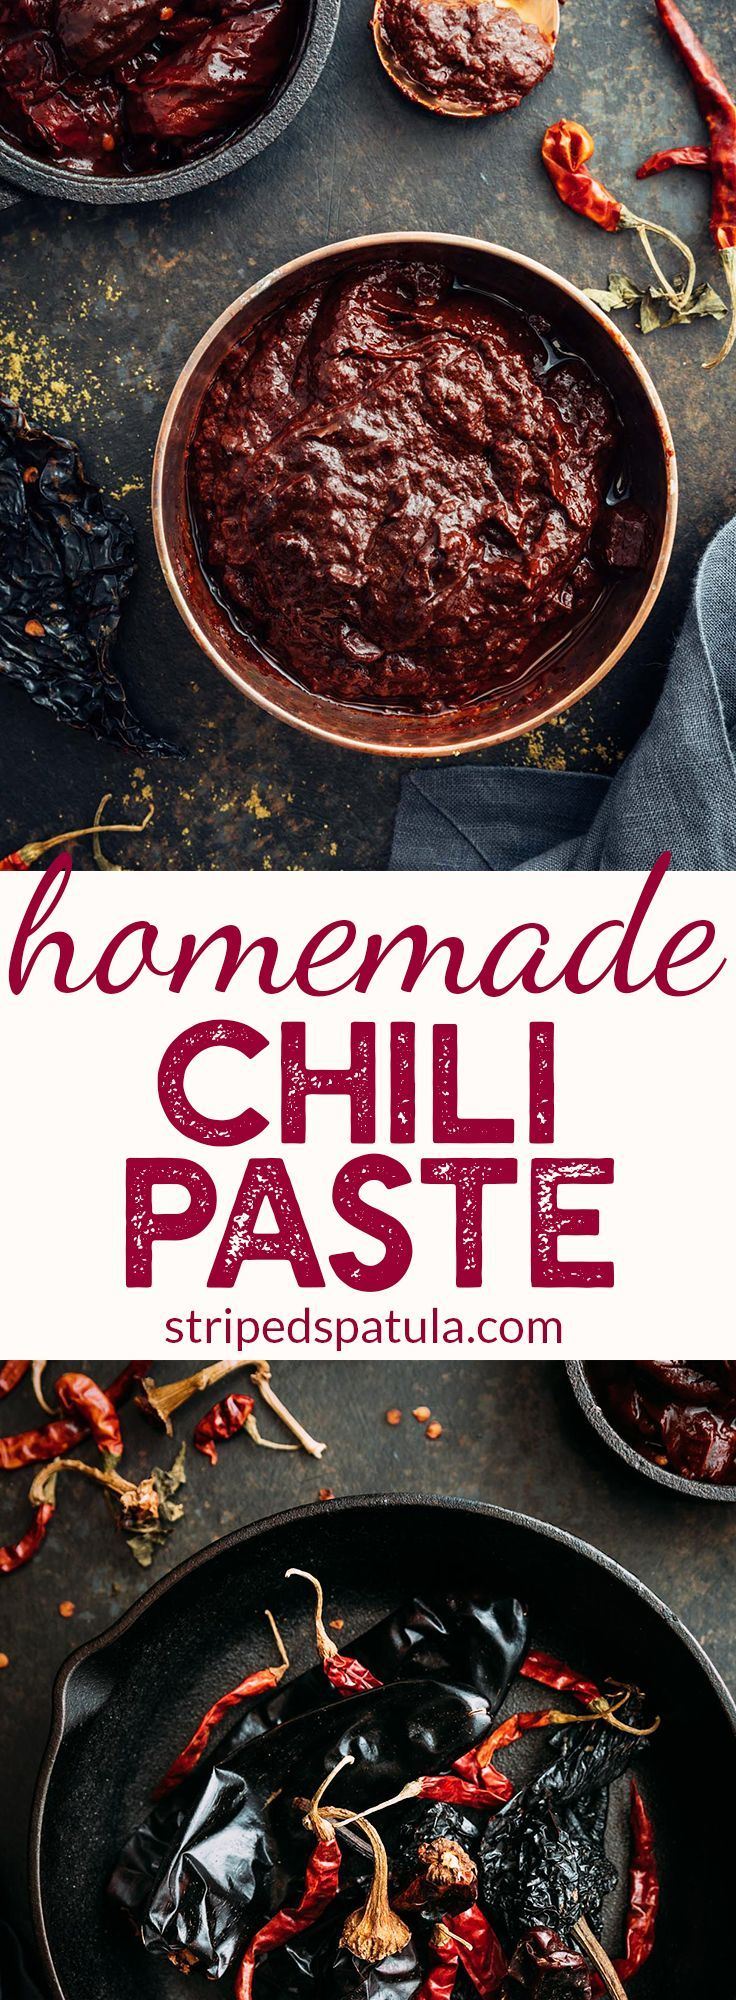 Homemade Chili Paste   Chili Paste Recipe Simple   How to make Chili Paste at Home   Dried Chili Recipes   Dried Chili Peppers   #stripedspatula #spicy #peppers